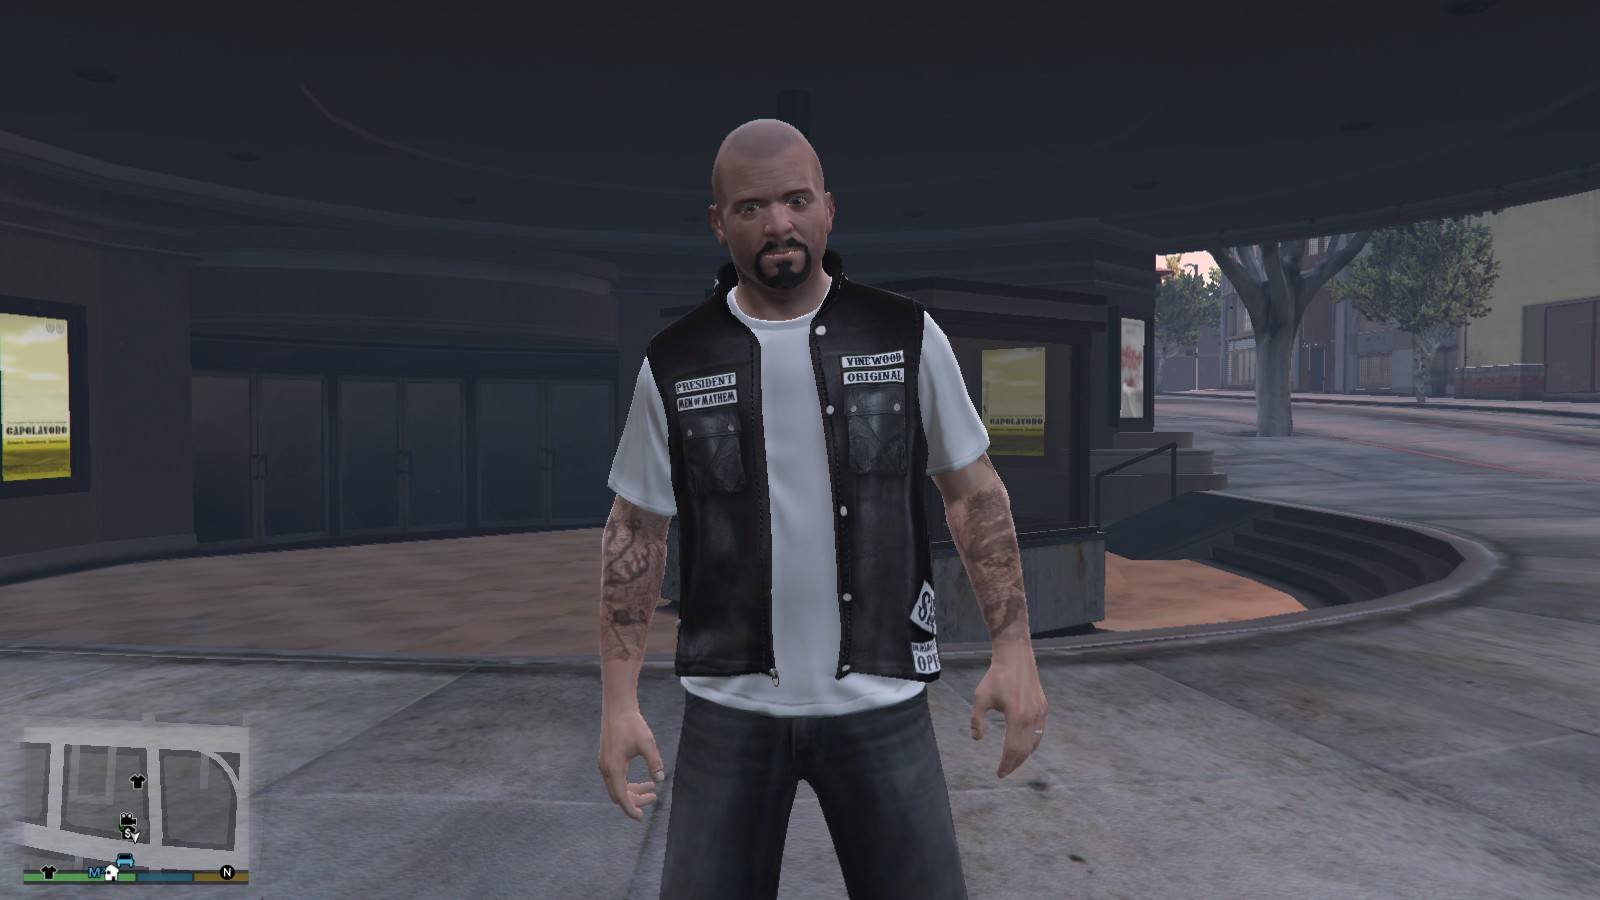 Biker Shirt Sons Of Anarchy GTA5 Mods (1)